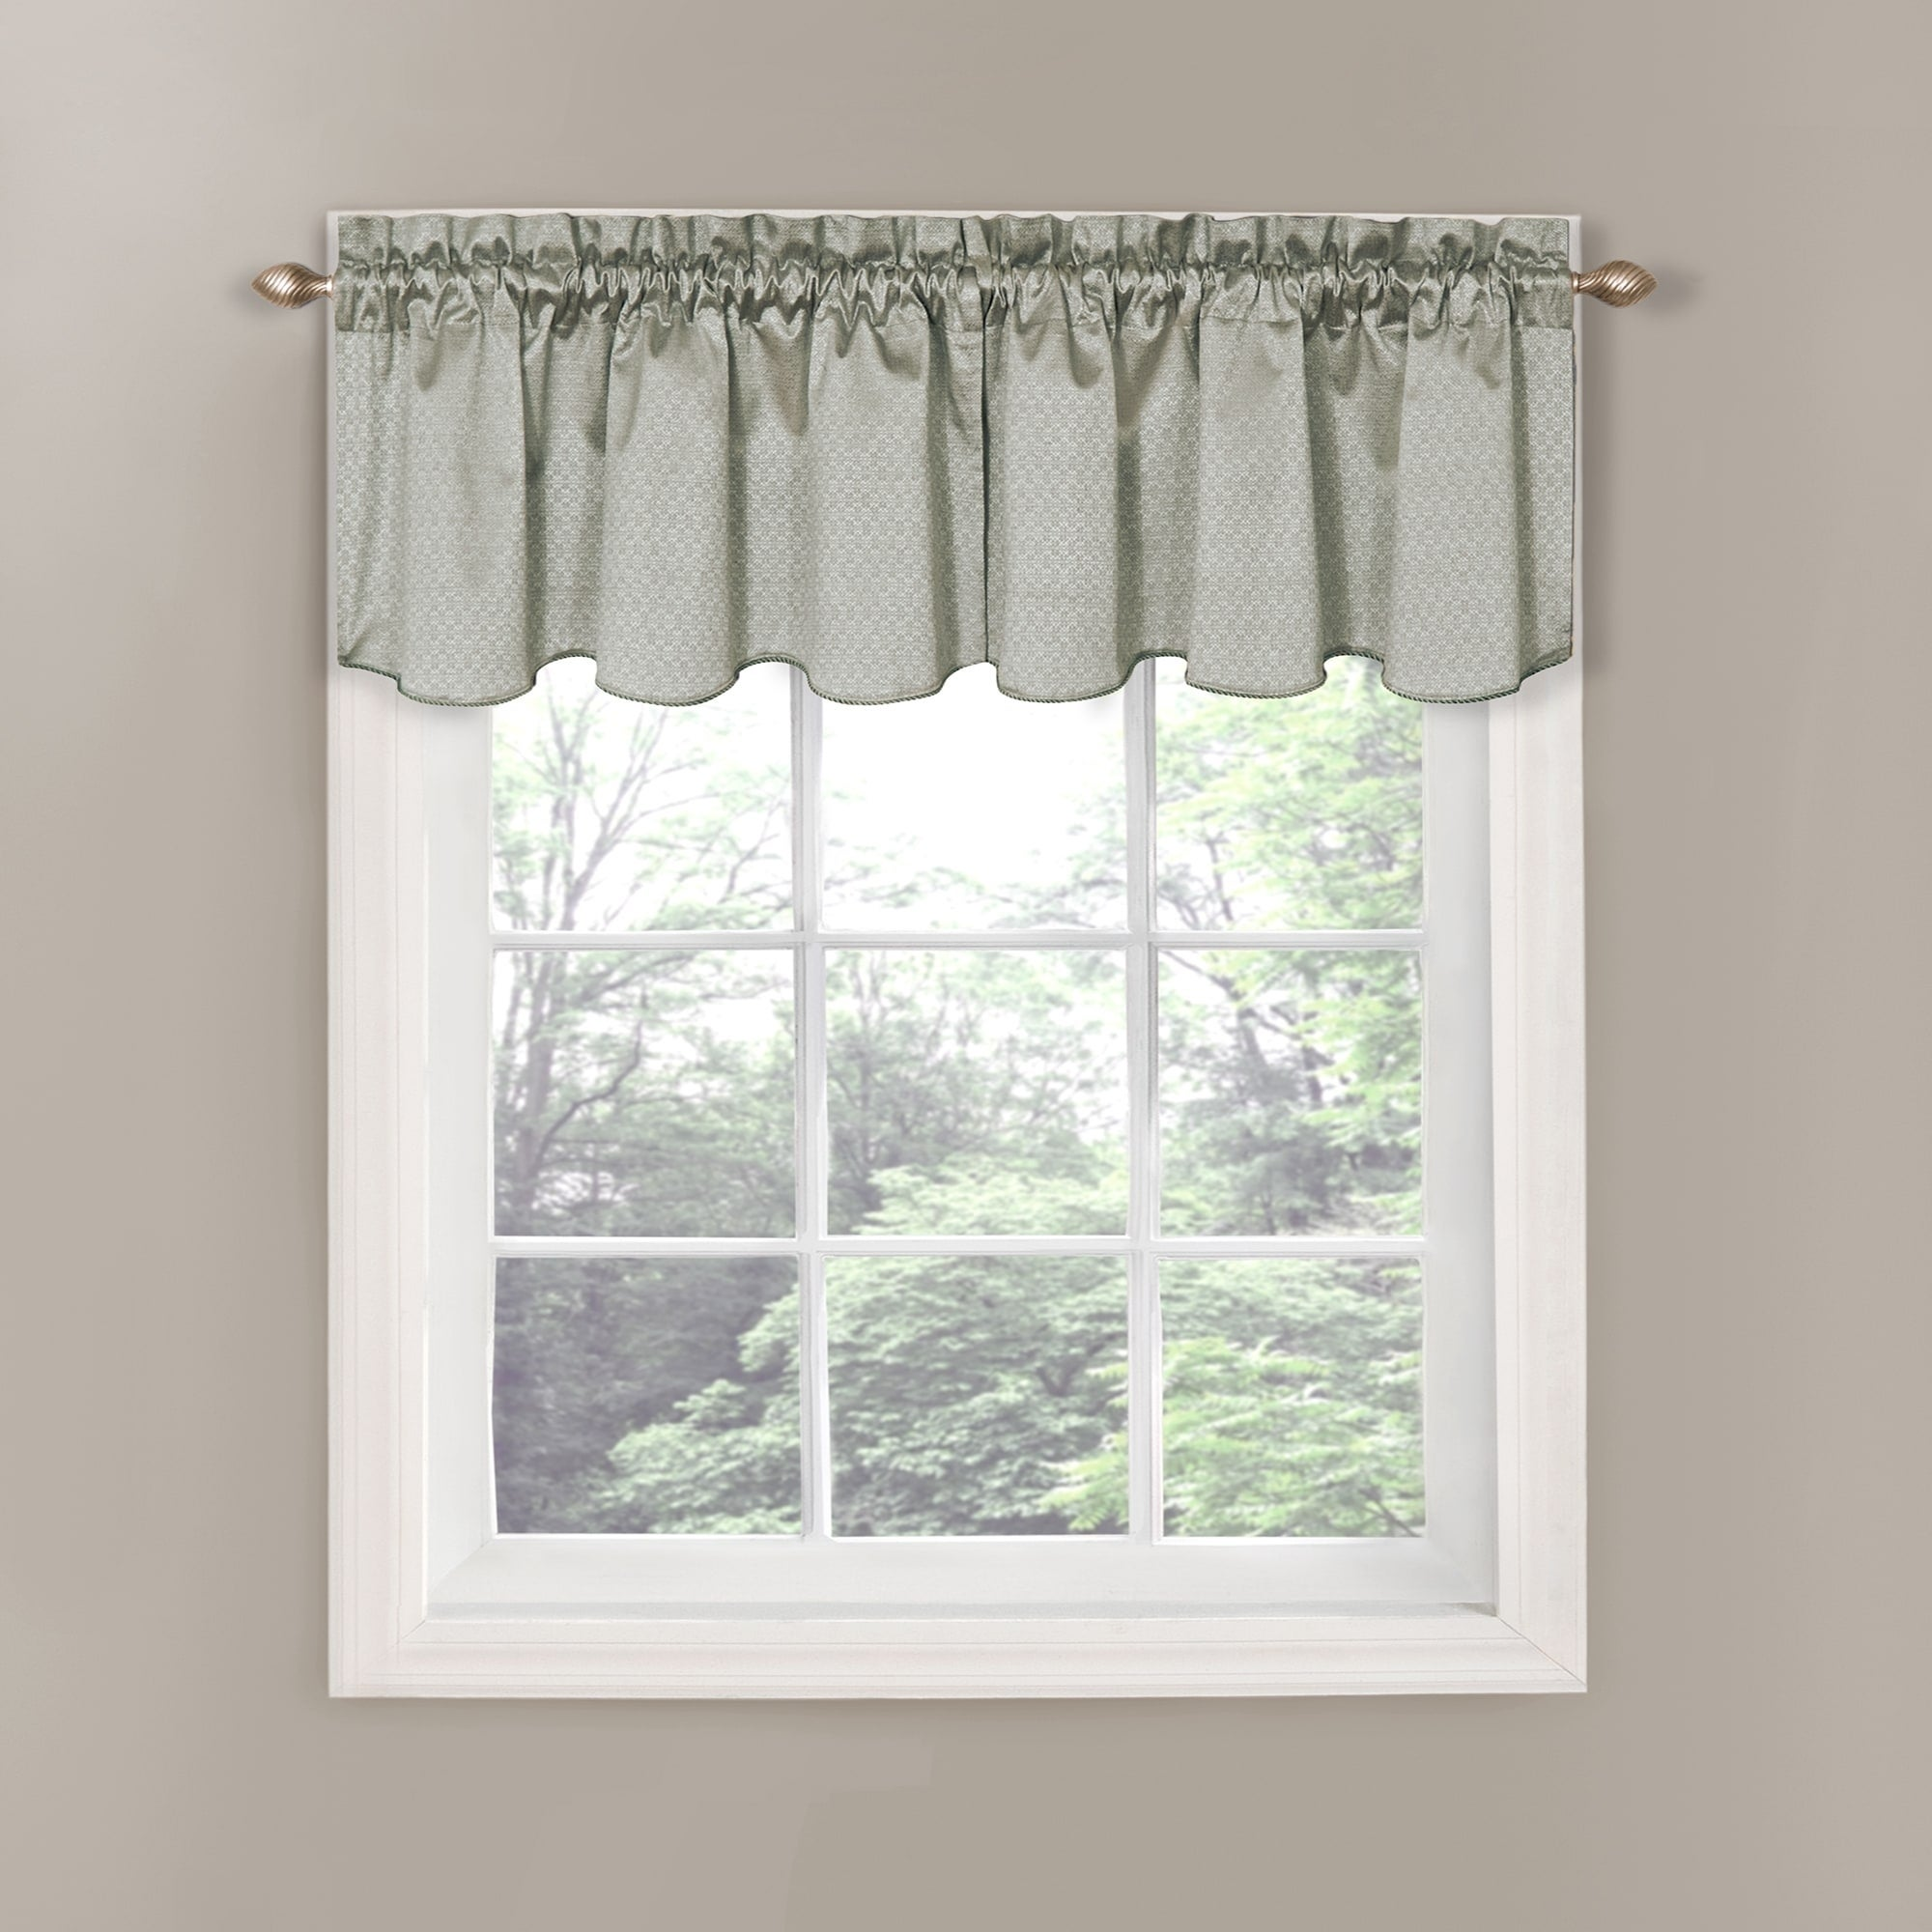 pdx reviews valance nursery alta zipcode printed design treatments wayfair window